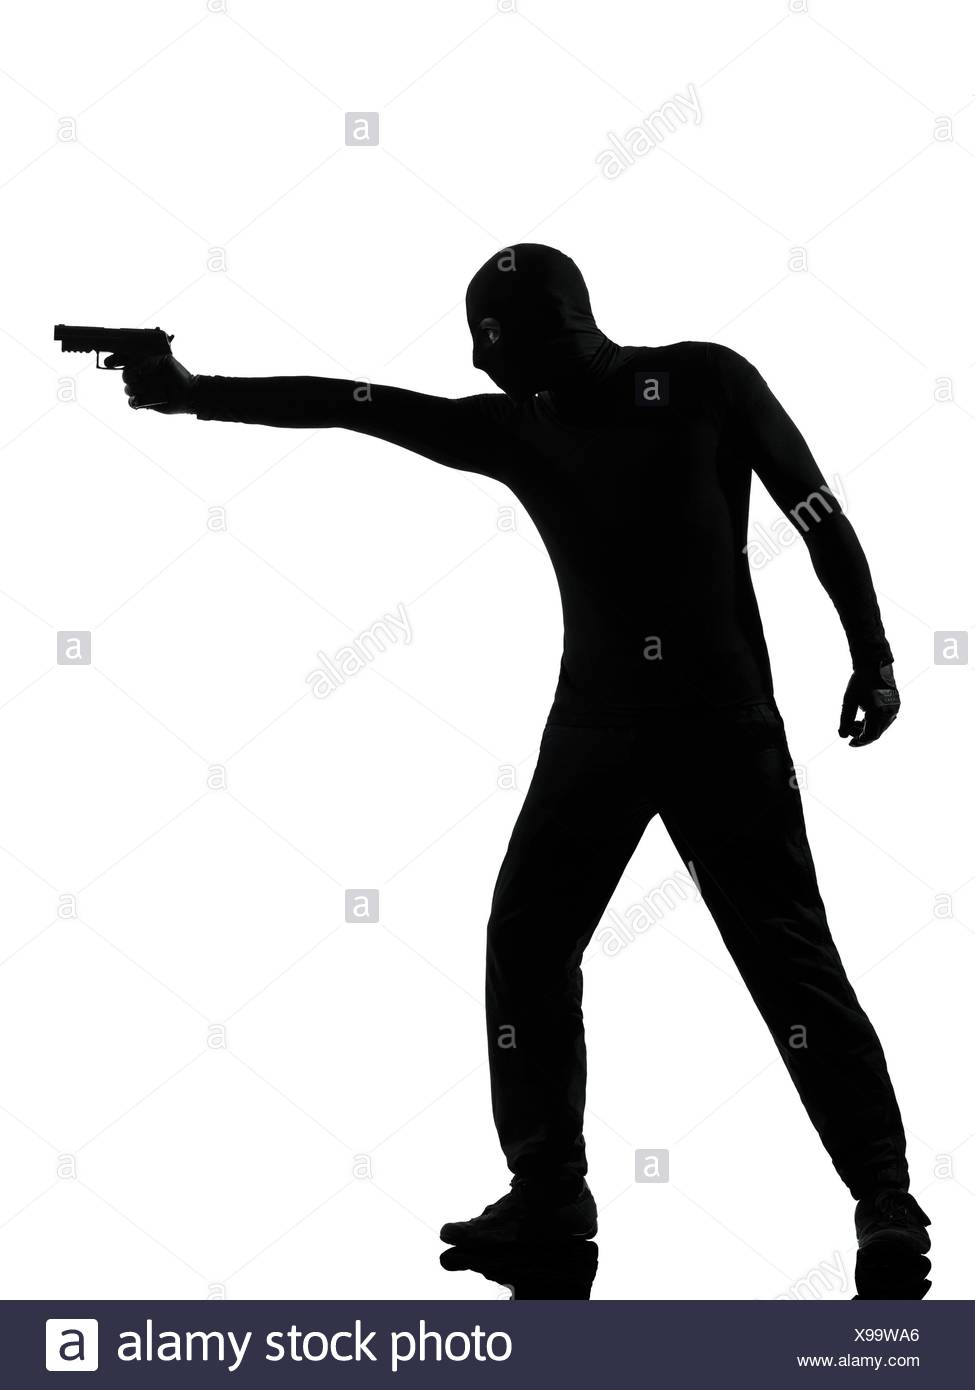 975x1390 Aiming Gun Black And White Stock Photos Amp Images